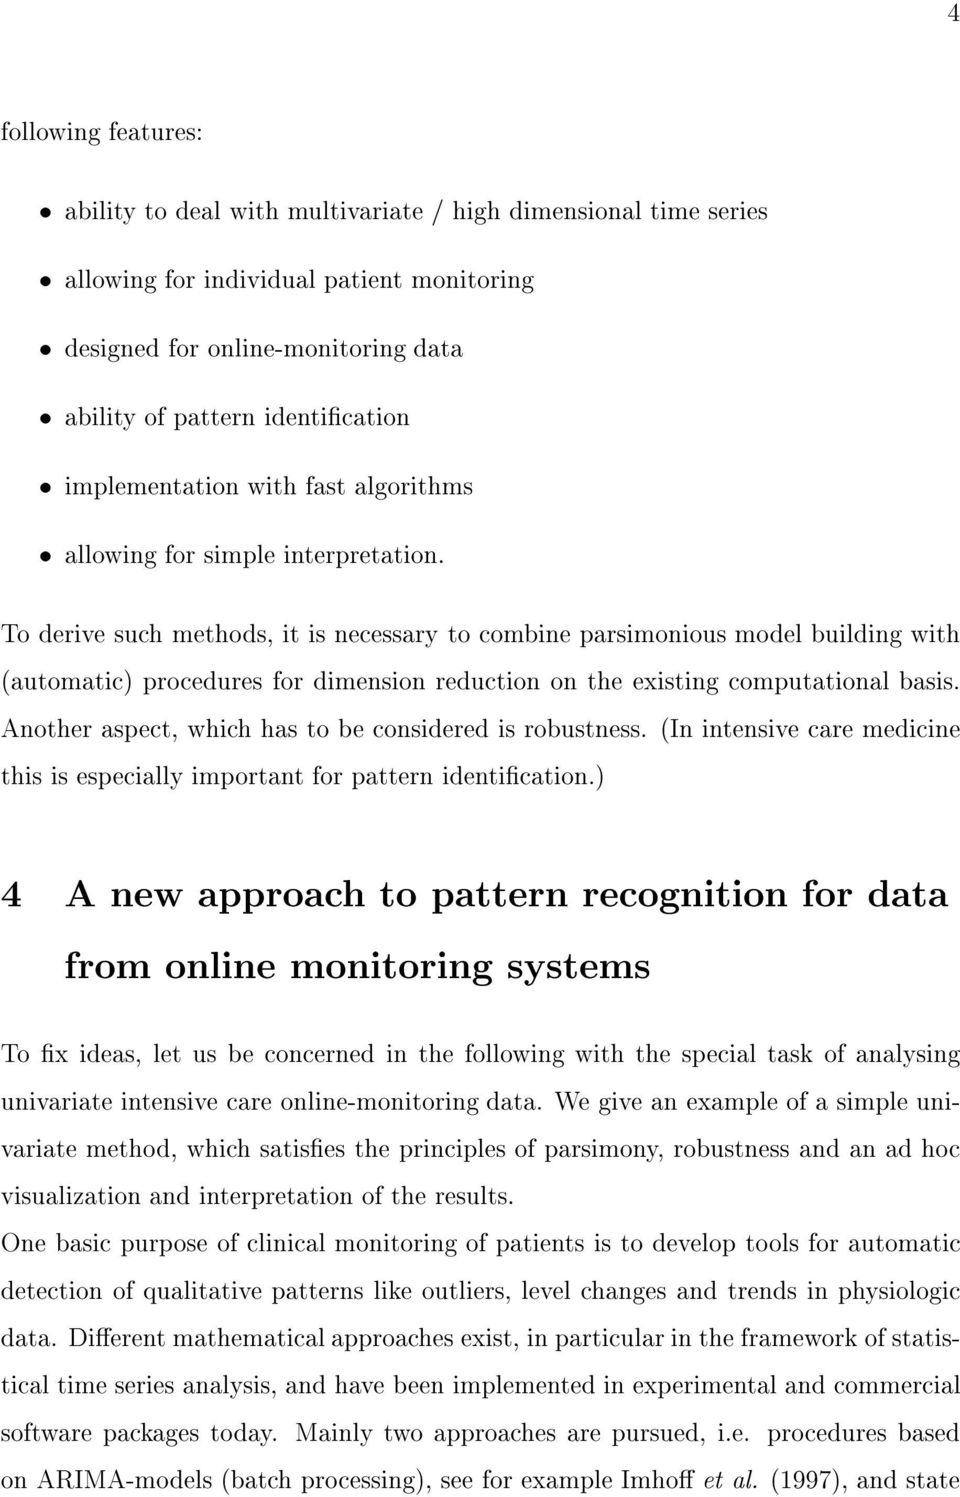 To derive such methods, it is necessary to combine parsimonious model building with (automatic) procedures for dimension reduction on the existing computational basis.